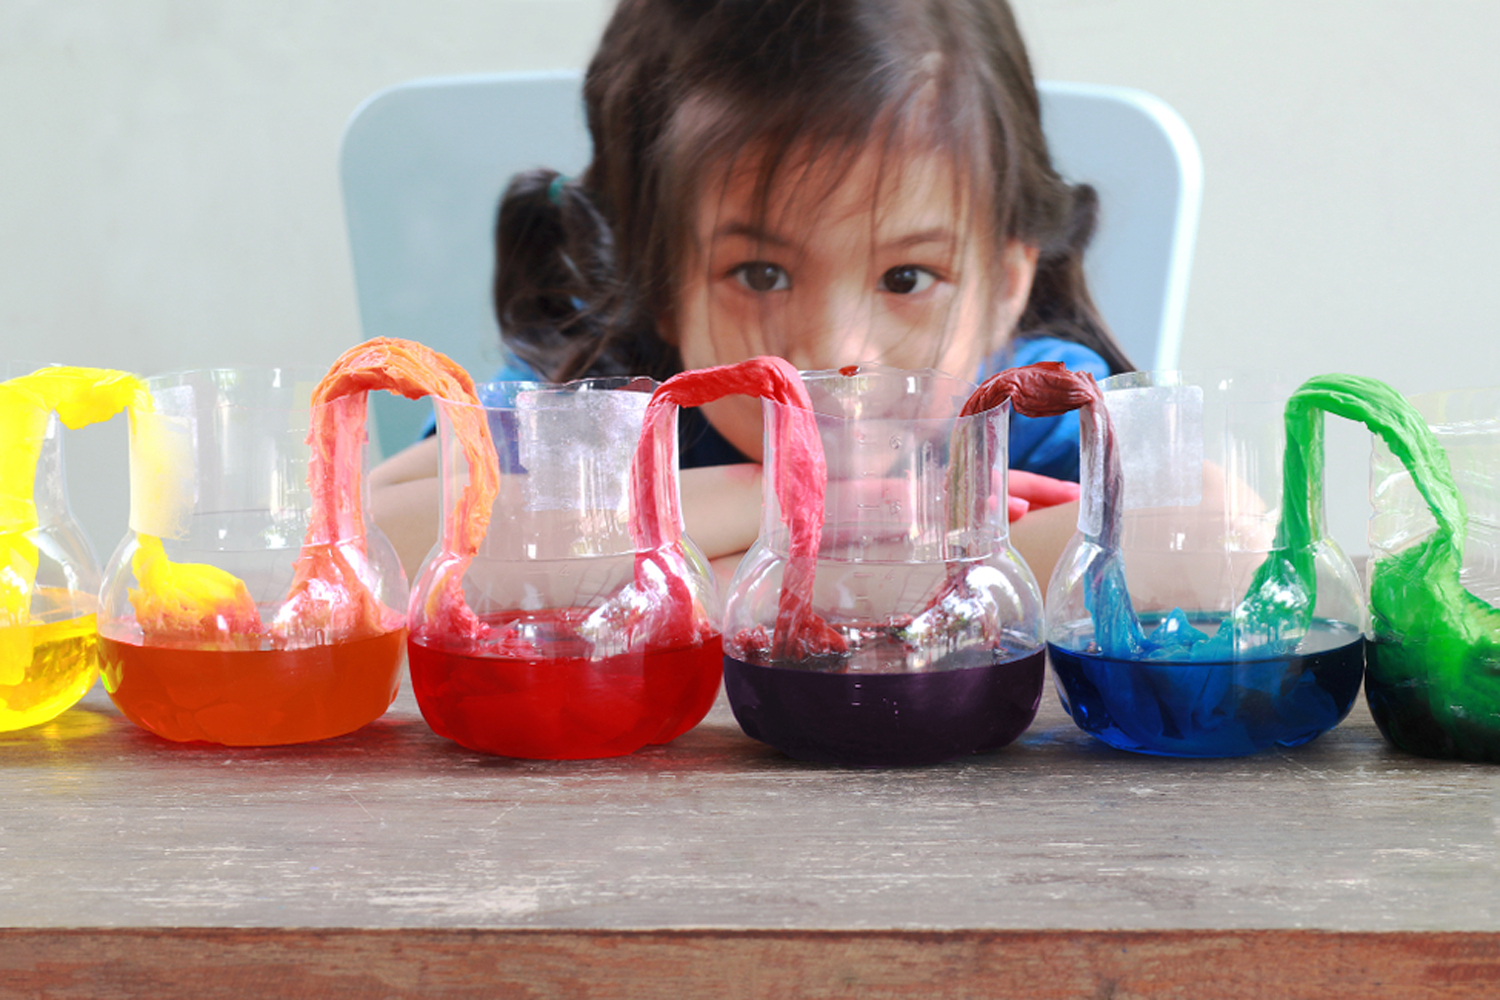 science experiments stem easy experiment fun activities children preschoolers learning child years toys young food moving toddler lesson preschooler different